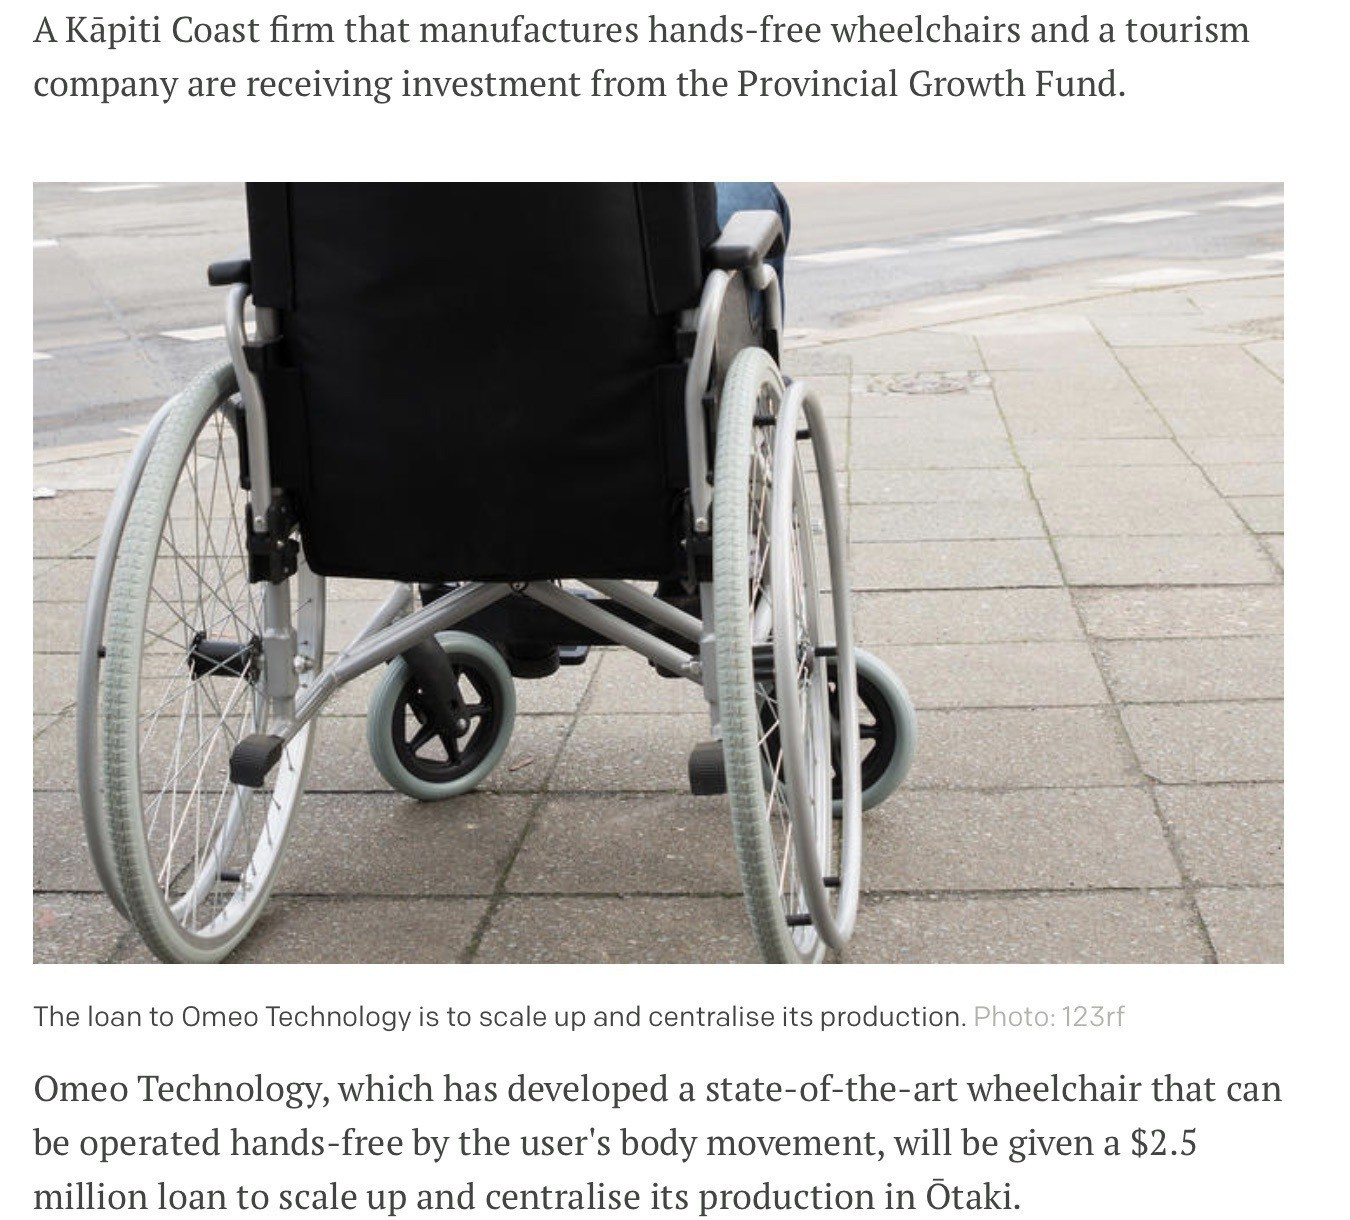 Radio NZ screenshot of story showing old-fashioned wheelchair as an illustration.